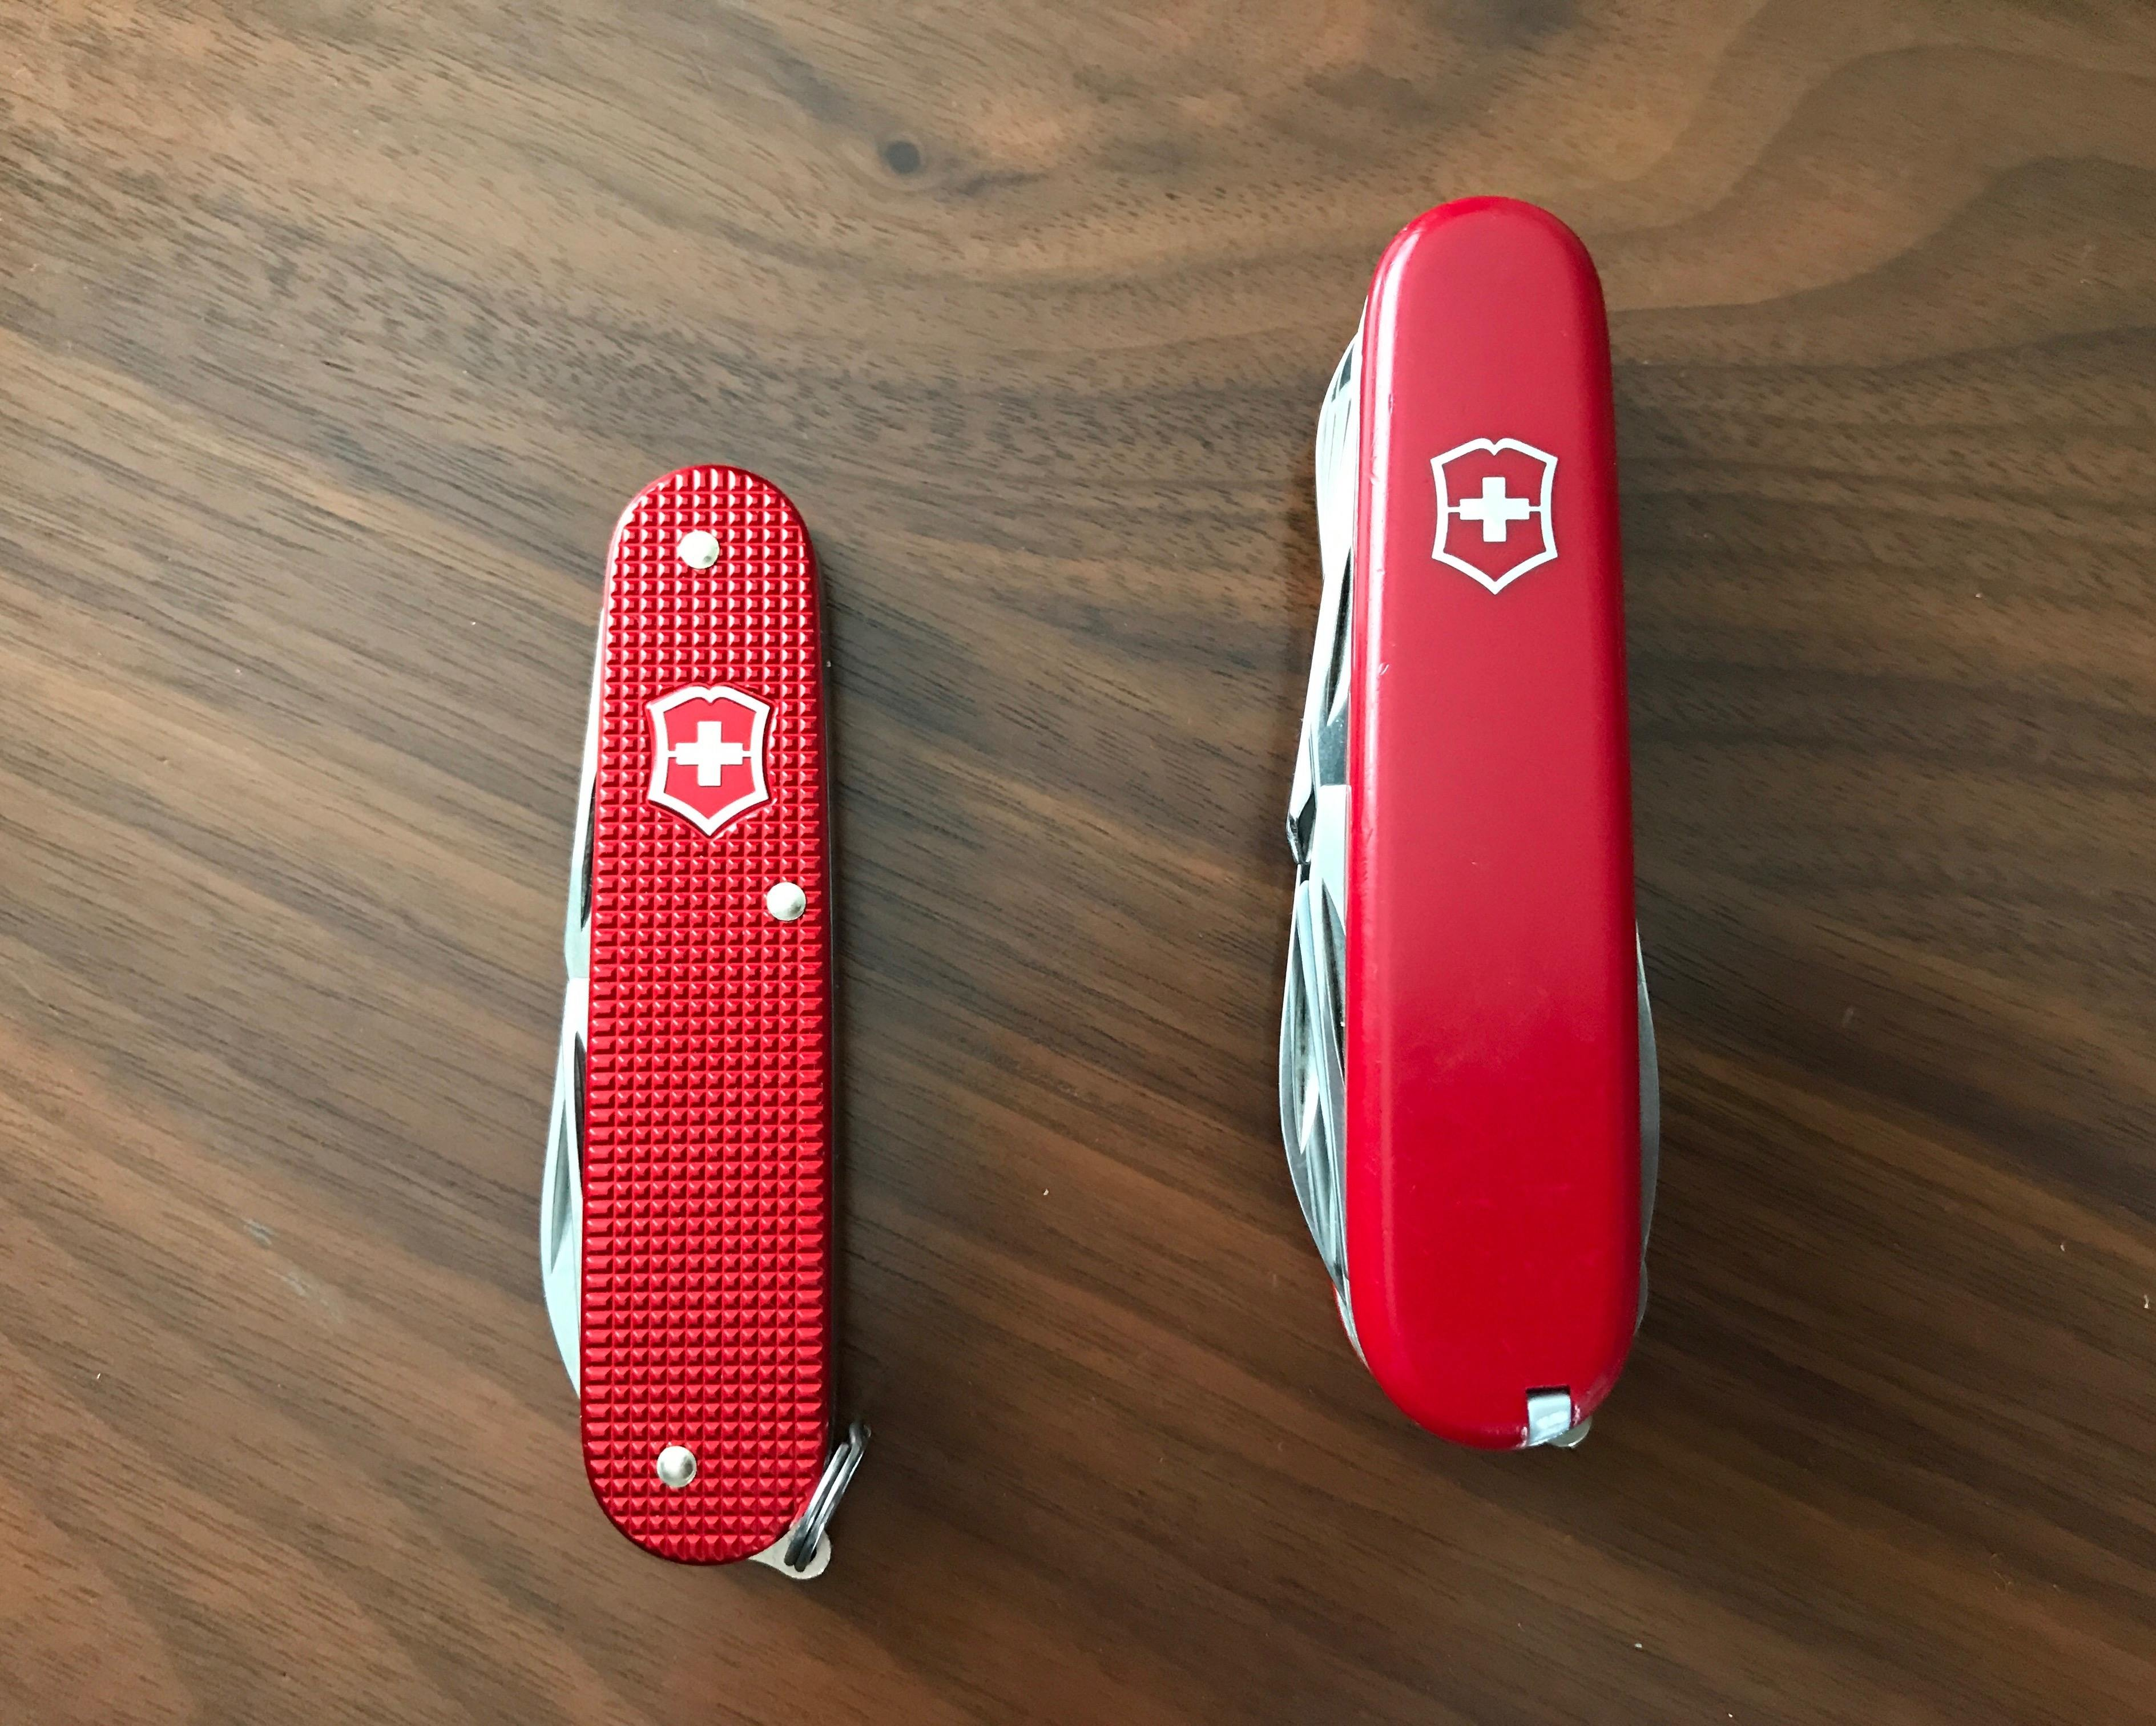 Swiss Army Knife Cadet The Brooks Review